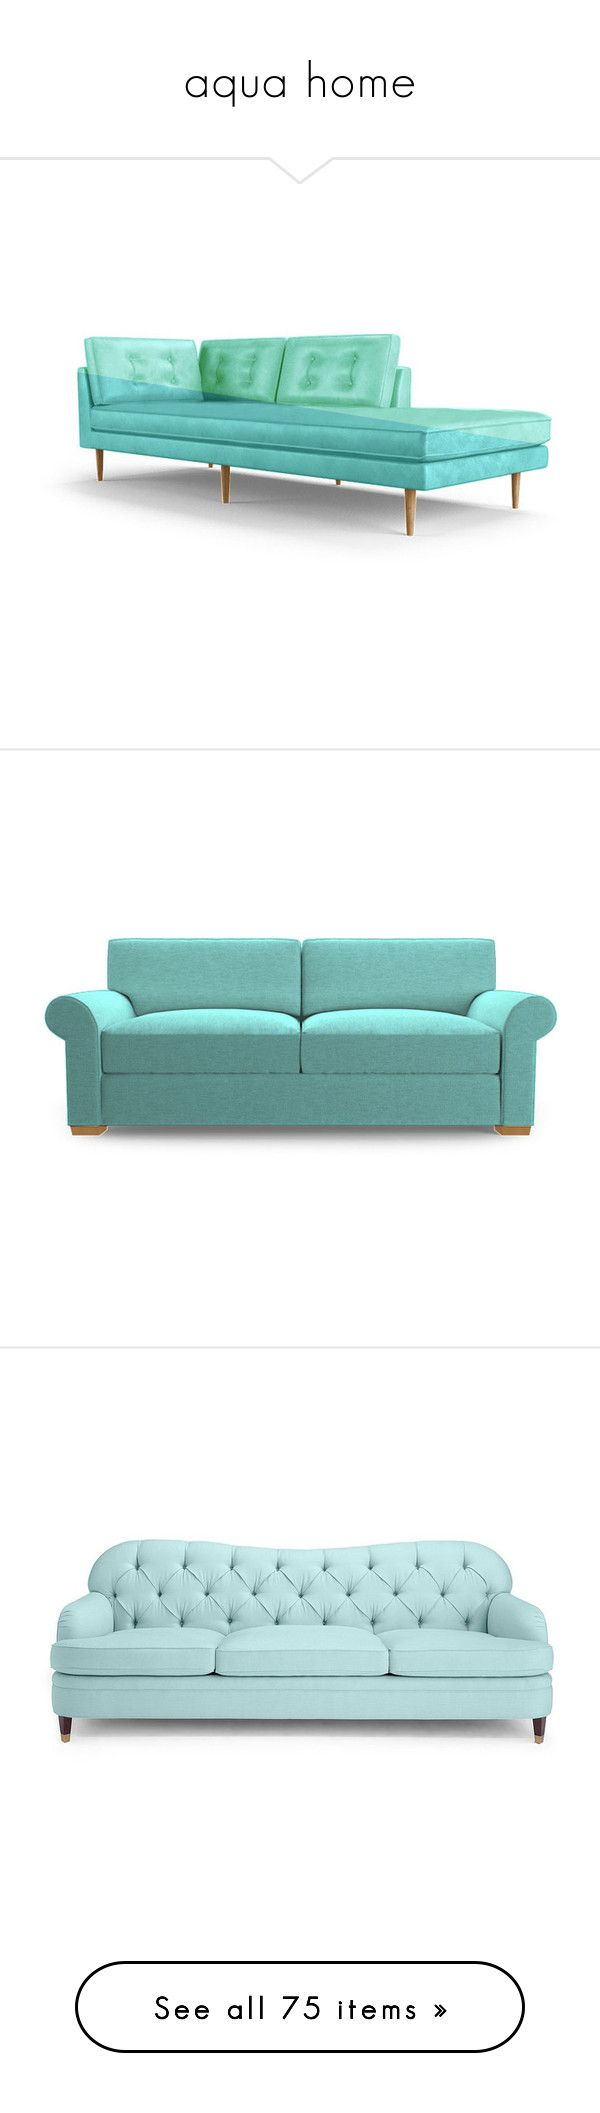 aqua home  by crystalliora   liked on Polyvore featuring home  furniture   chairs  accent chairs  blue  leather accent chairs  plush chair  blue ch aqua home  by crystalliora   liked on Polyvore featuring home  . Aqua Leather Accent Chair. Home Design Ideas